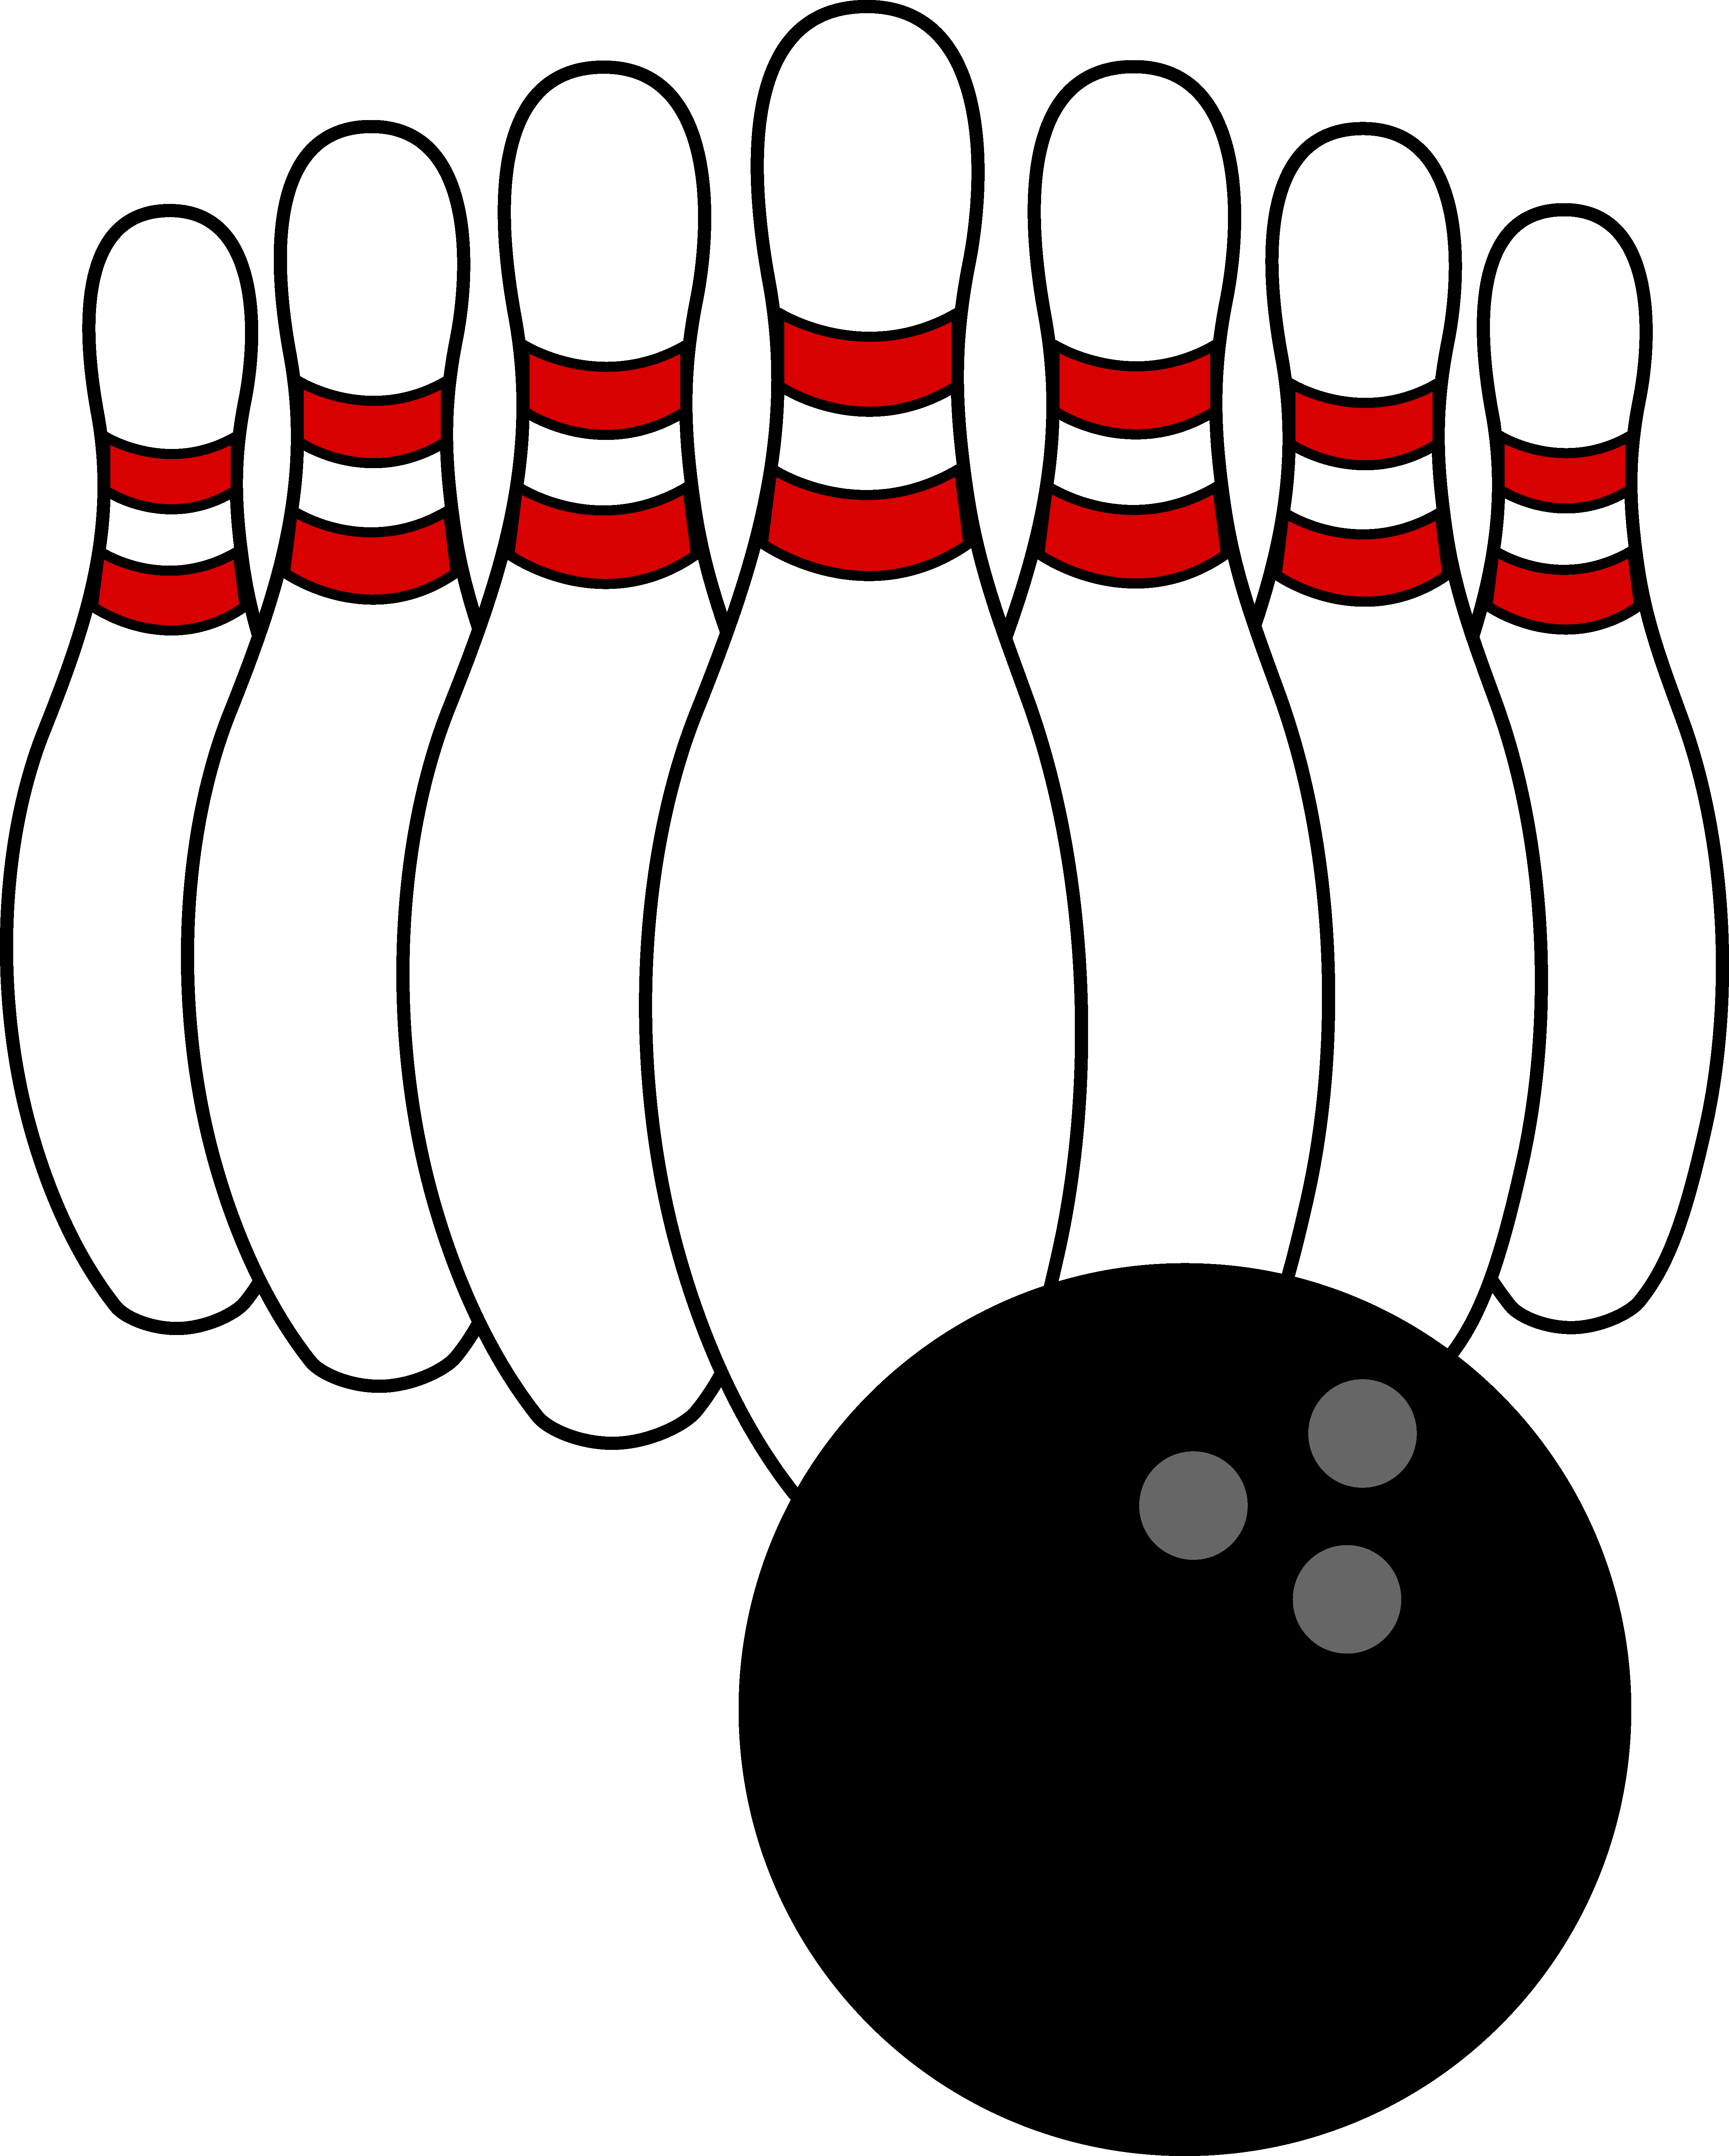 Bowling bowler clipart free i - Bowling Clipart